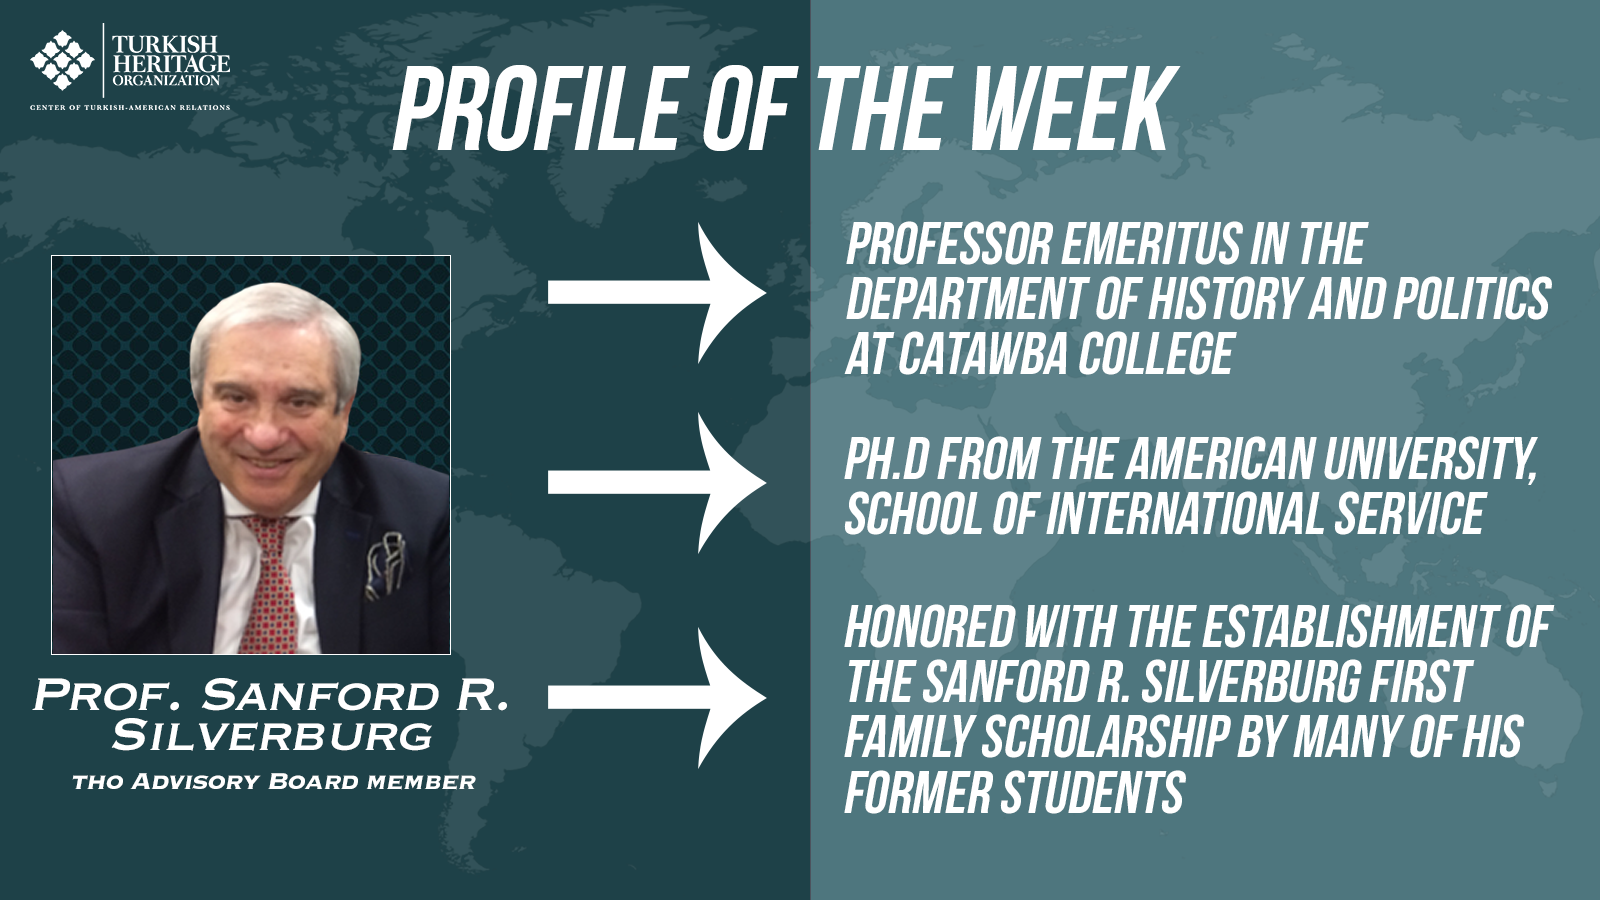 Sanford R. Silverburg is a professor emeritus from the Department of History and Politics at Catawba College, Salisbury, NC